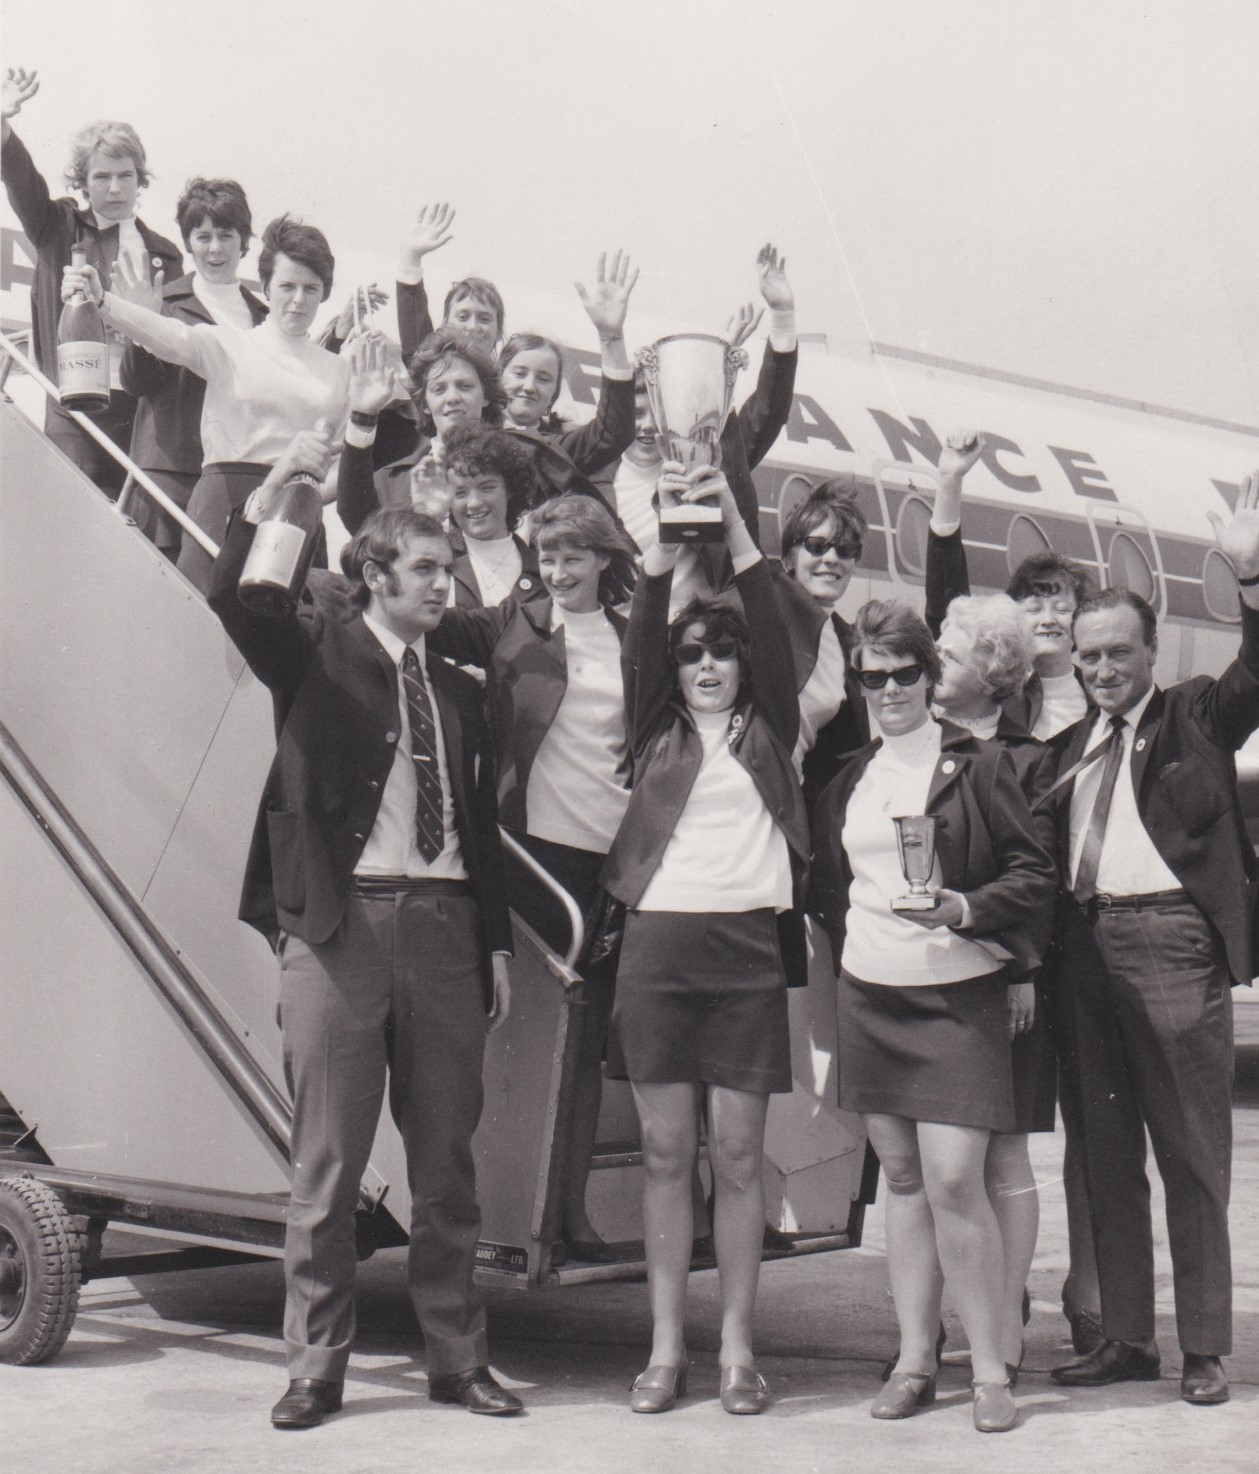 Manchester Corinthians returning from the Reims tournament with the trophy (photo courtesy of Margaret Shepherd)